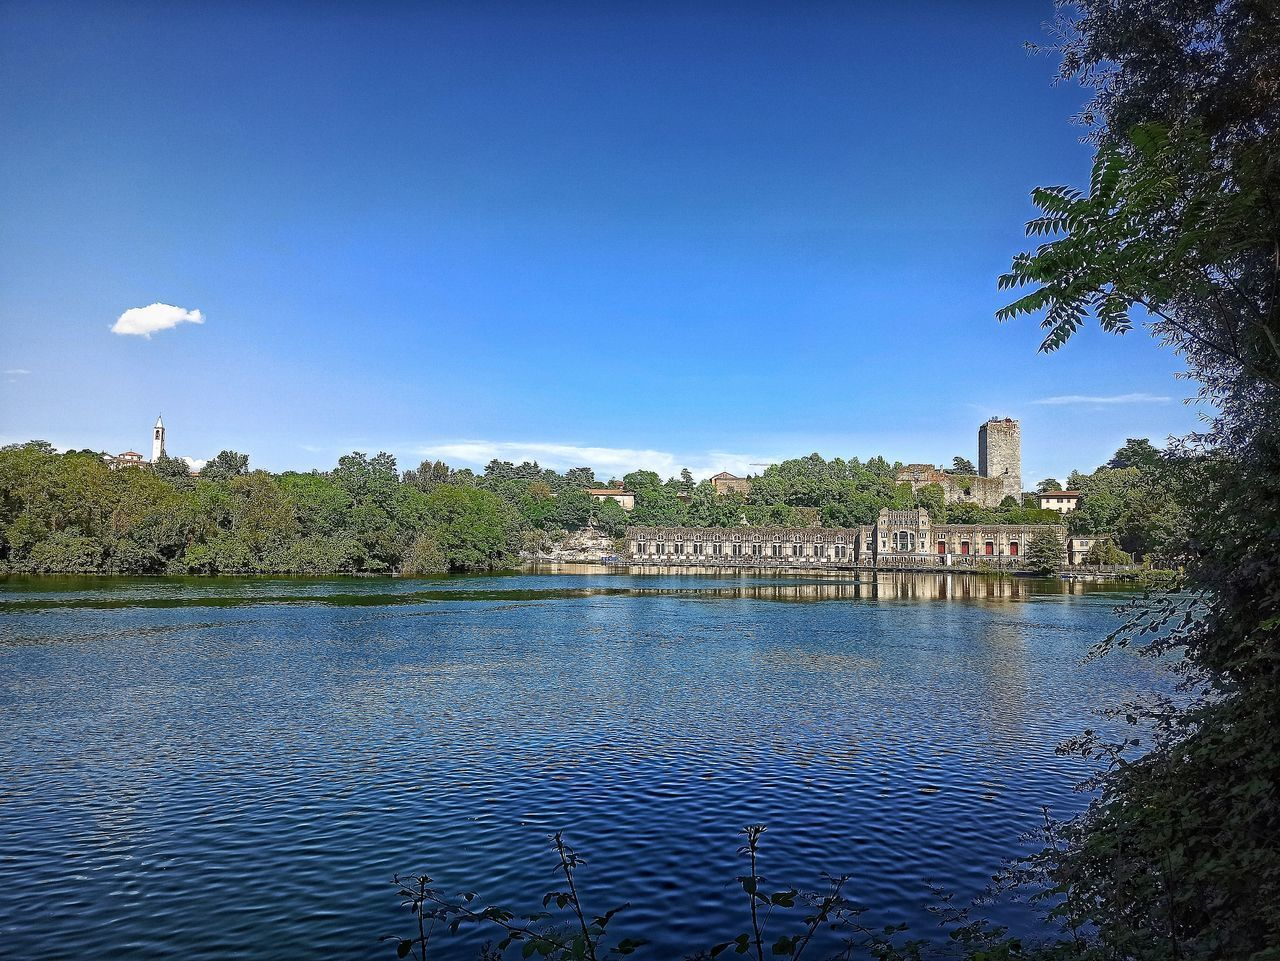 VIEW OF LAKE AGAINST BLUE SKY